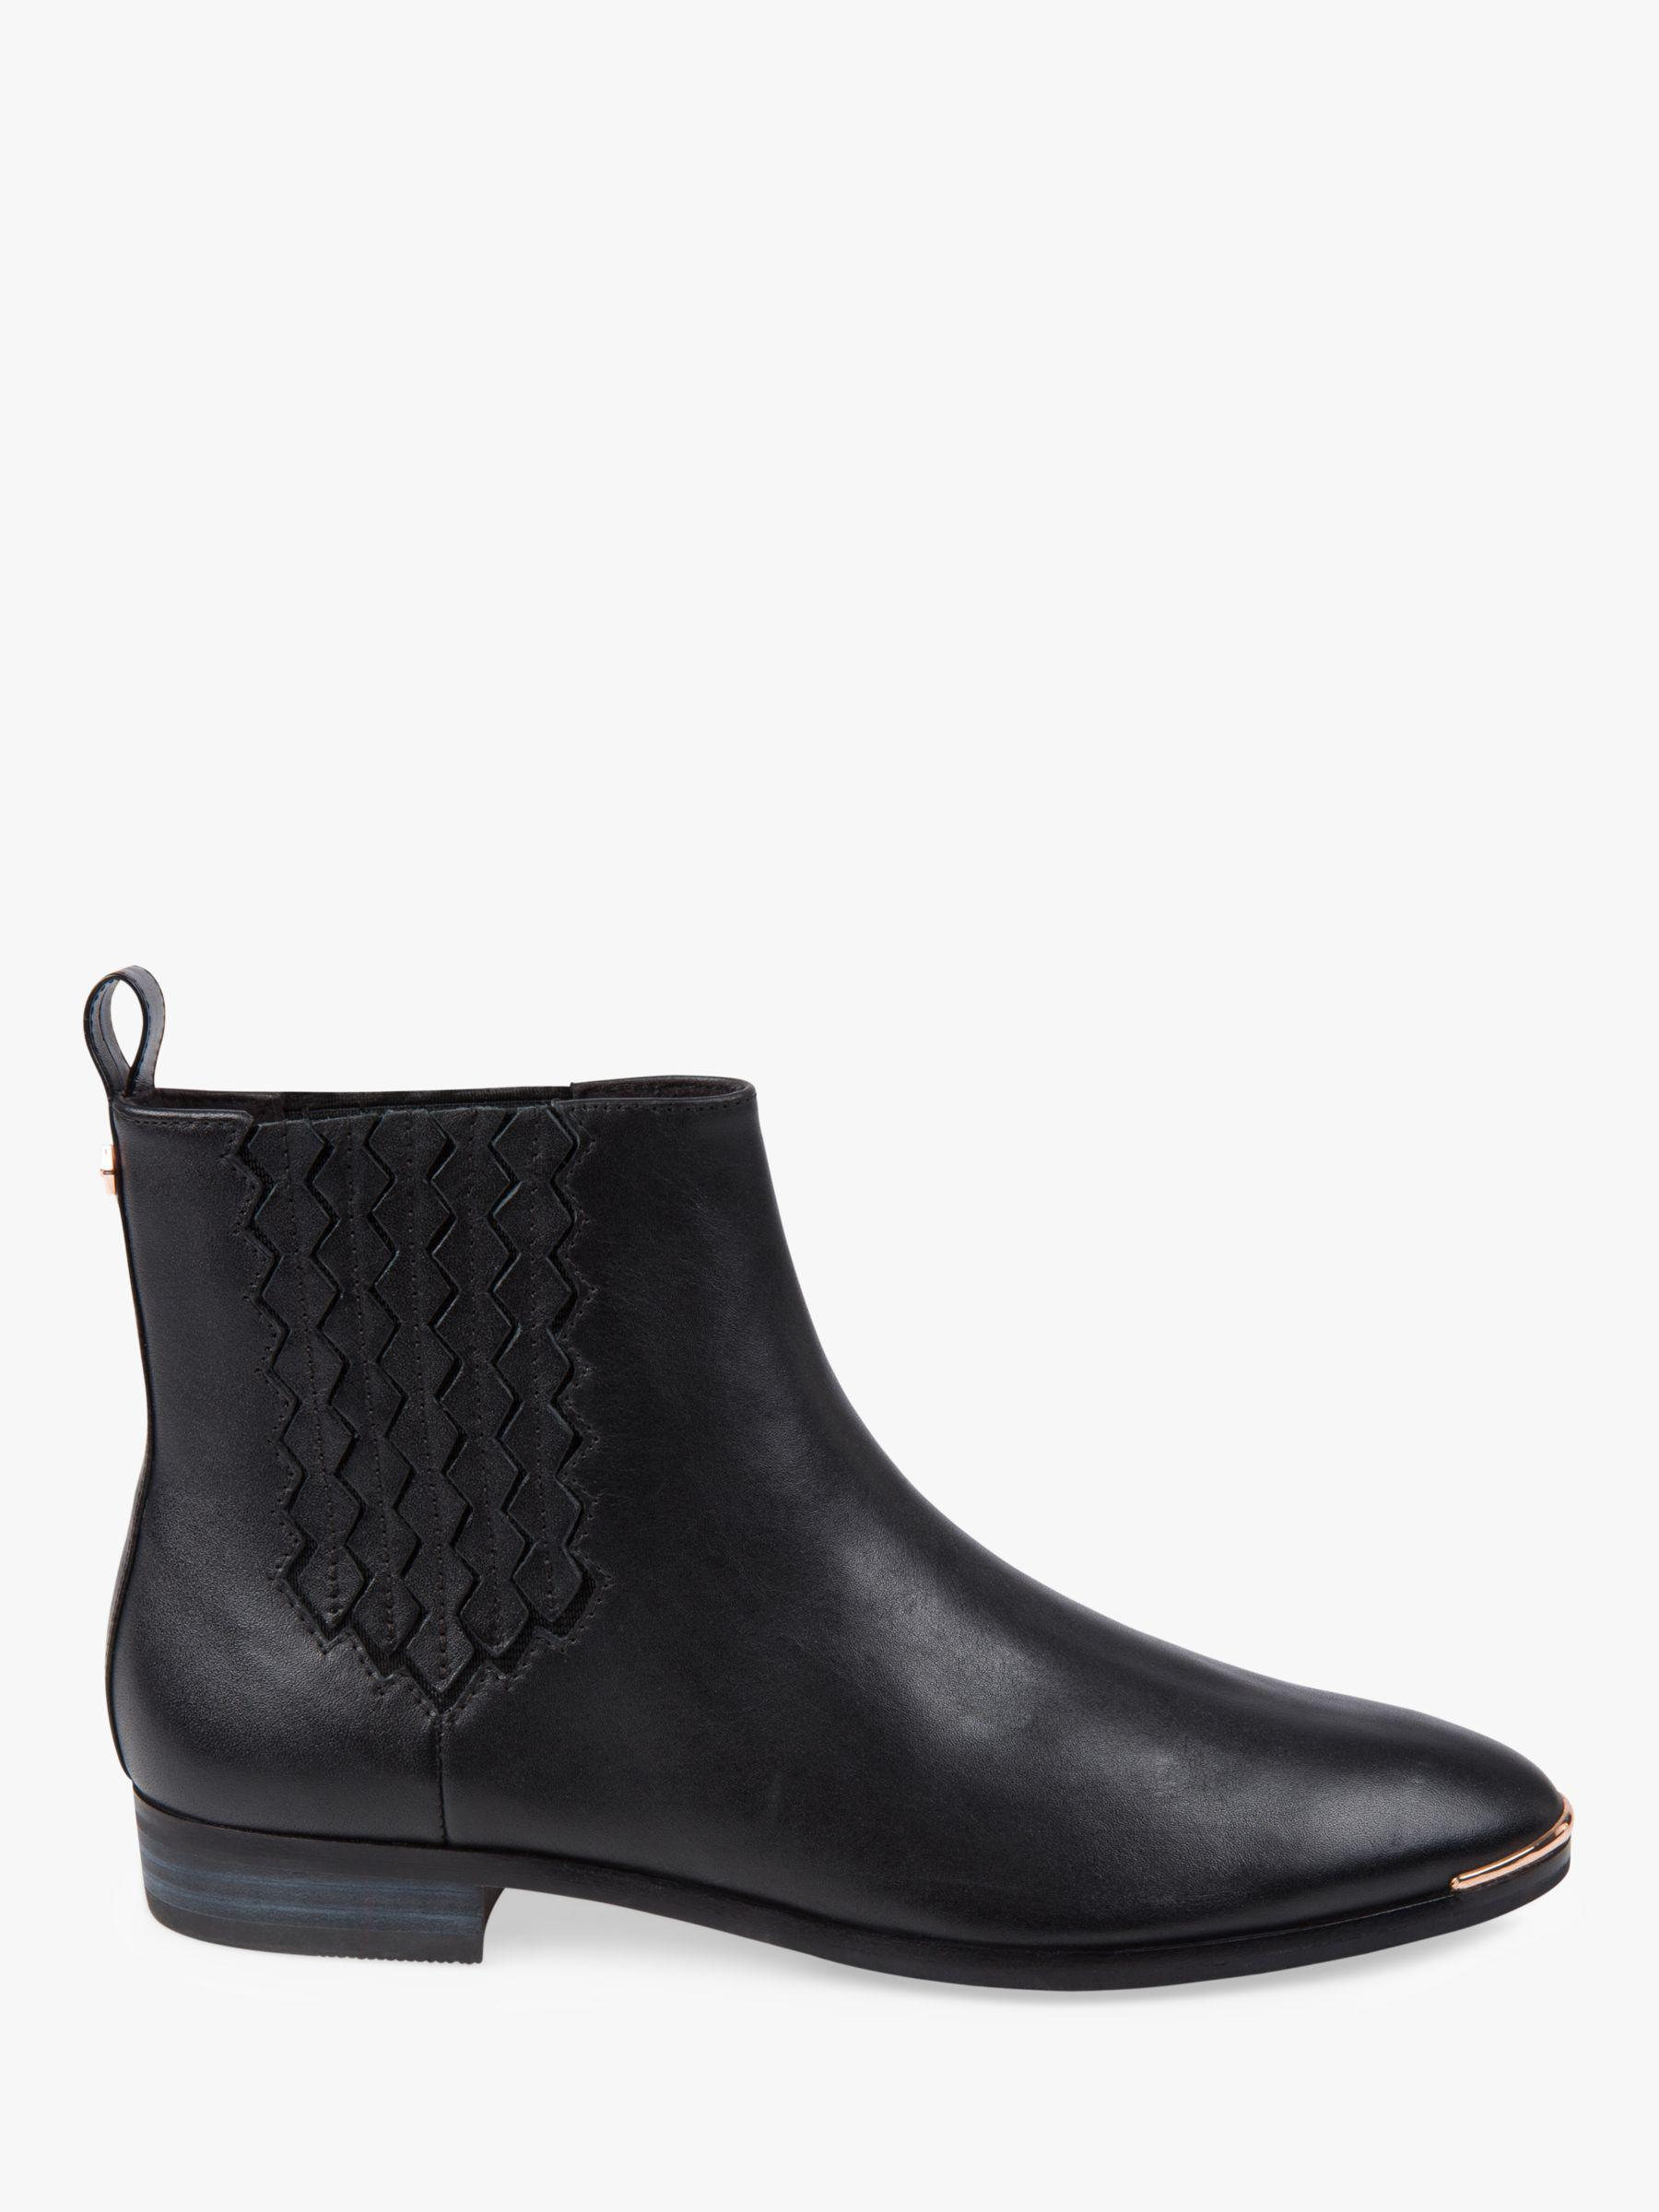 9de09fc6068 Ted Baker Liveca Chelsea Ankle Boots in Black - Lyst